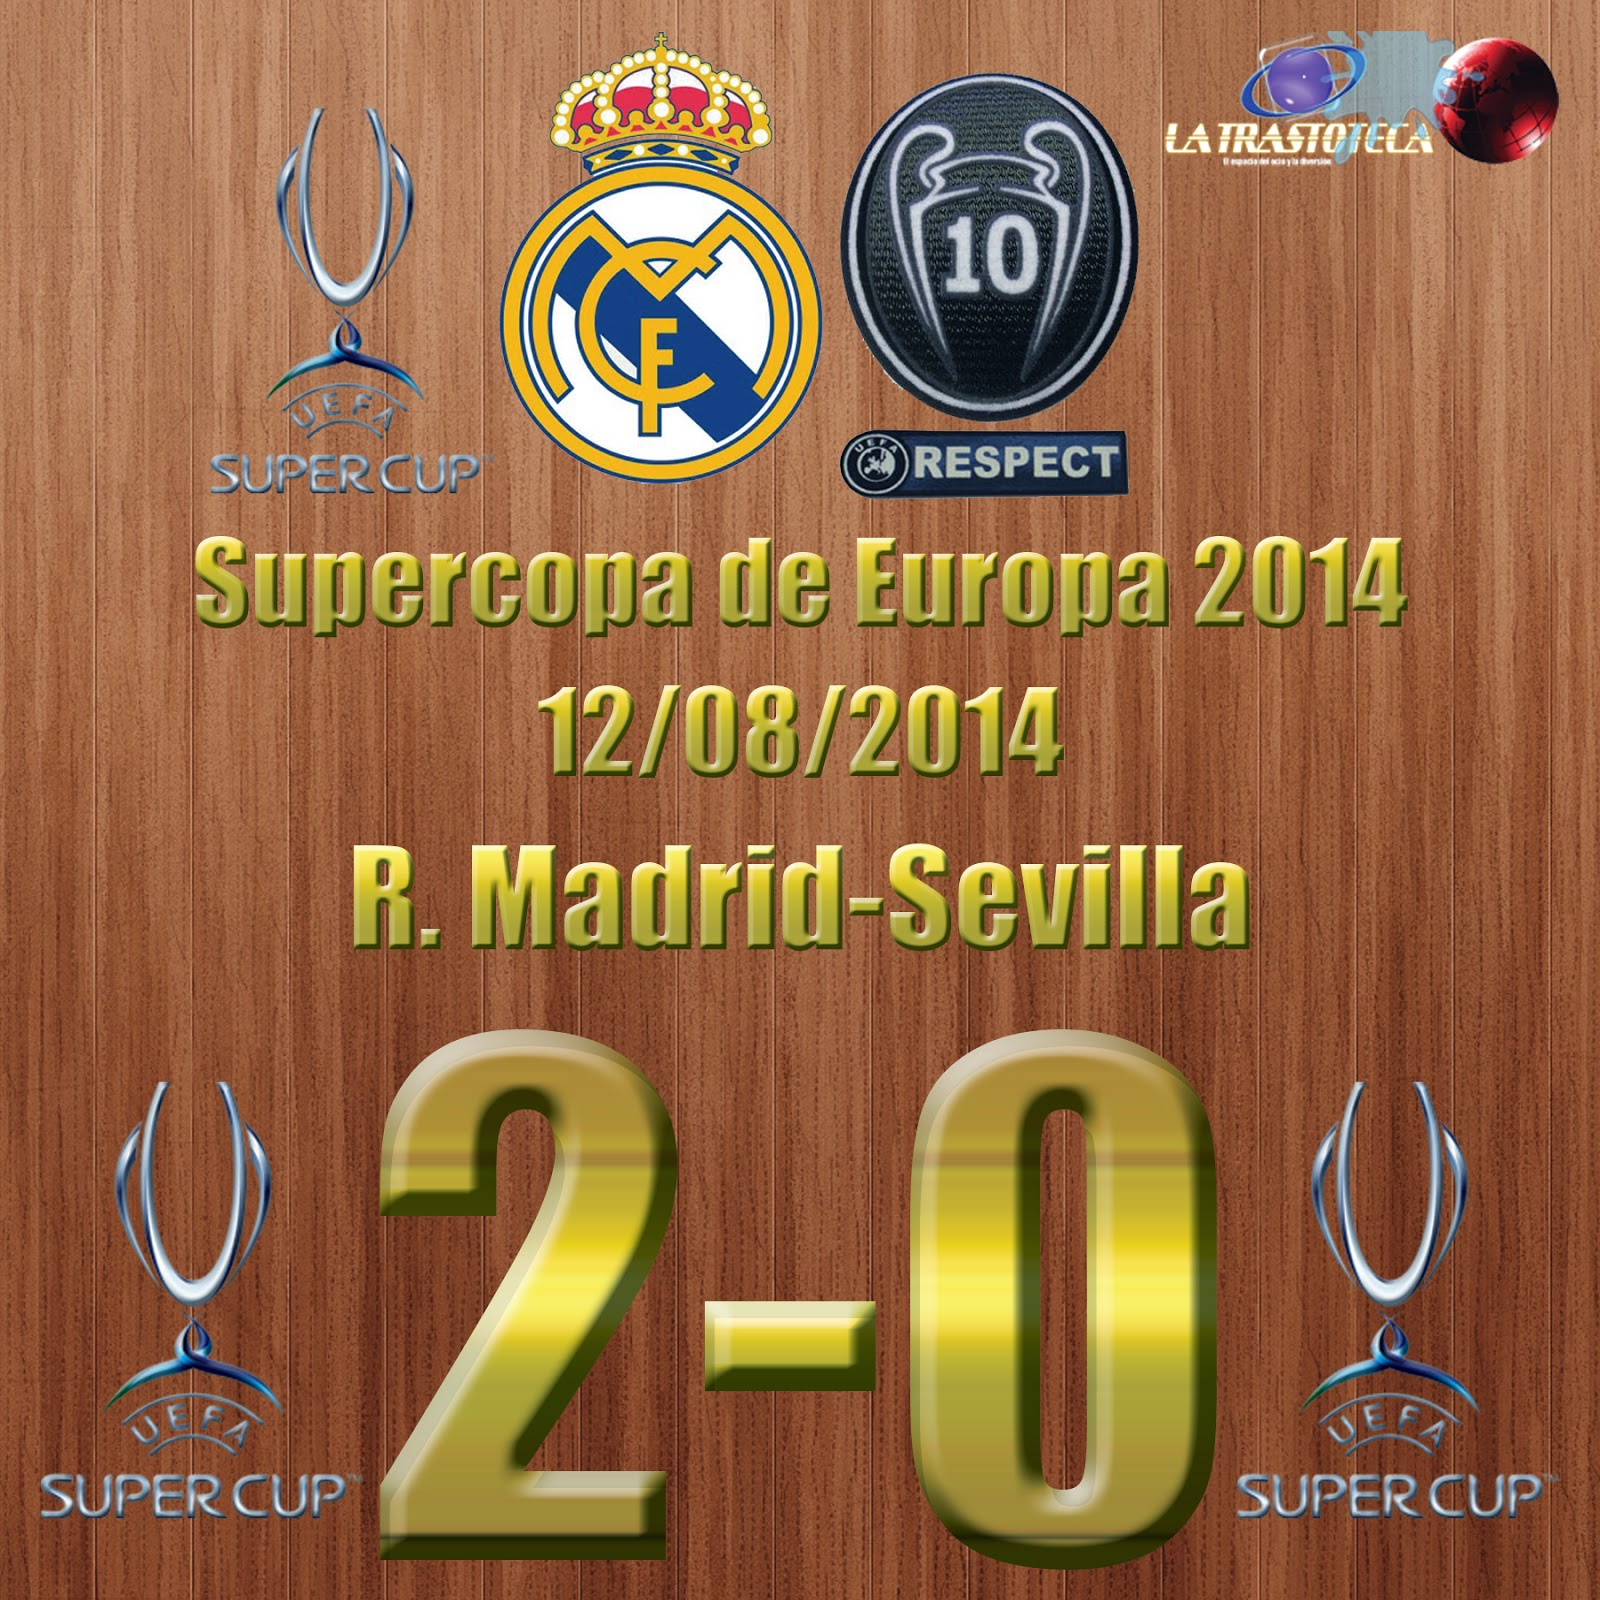 Real Madrid 2 - 0 Sevilla - Real Madrid Campeón Supercopa de Europa - Super Real Madrid.